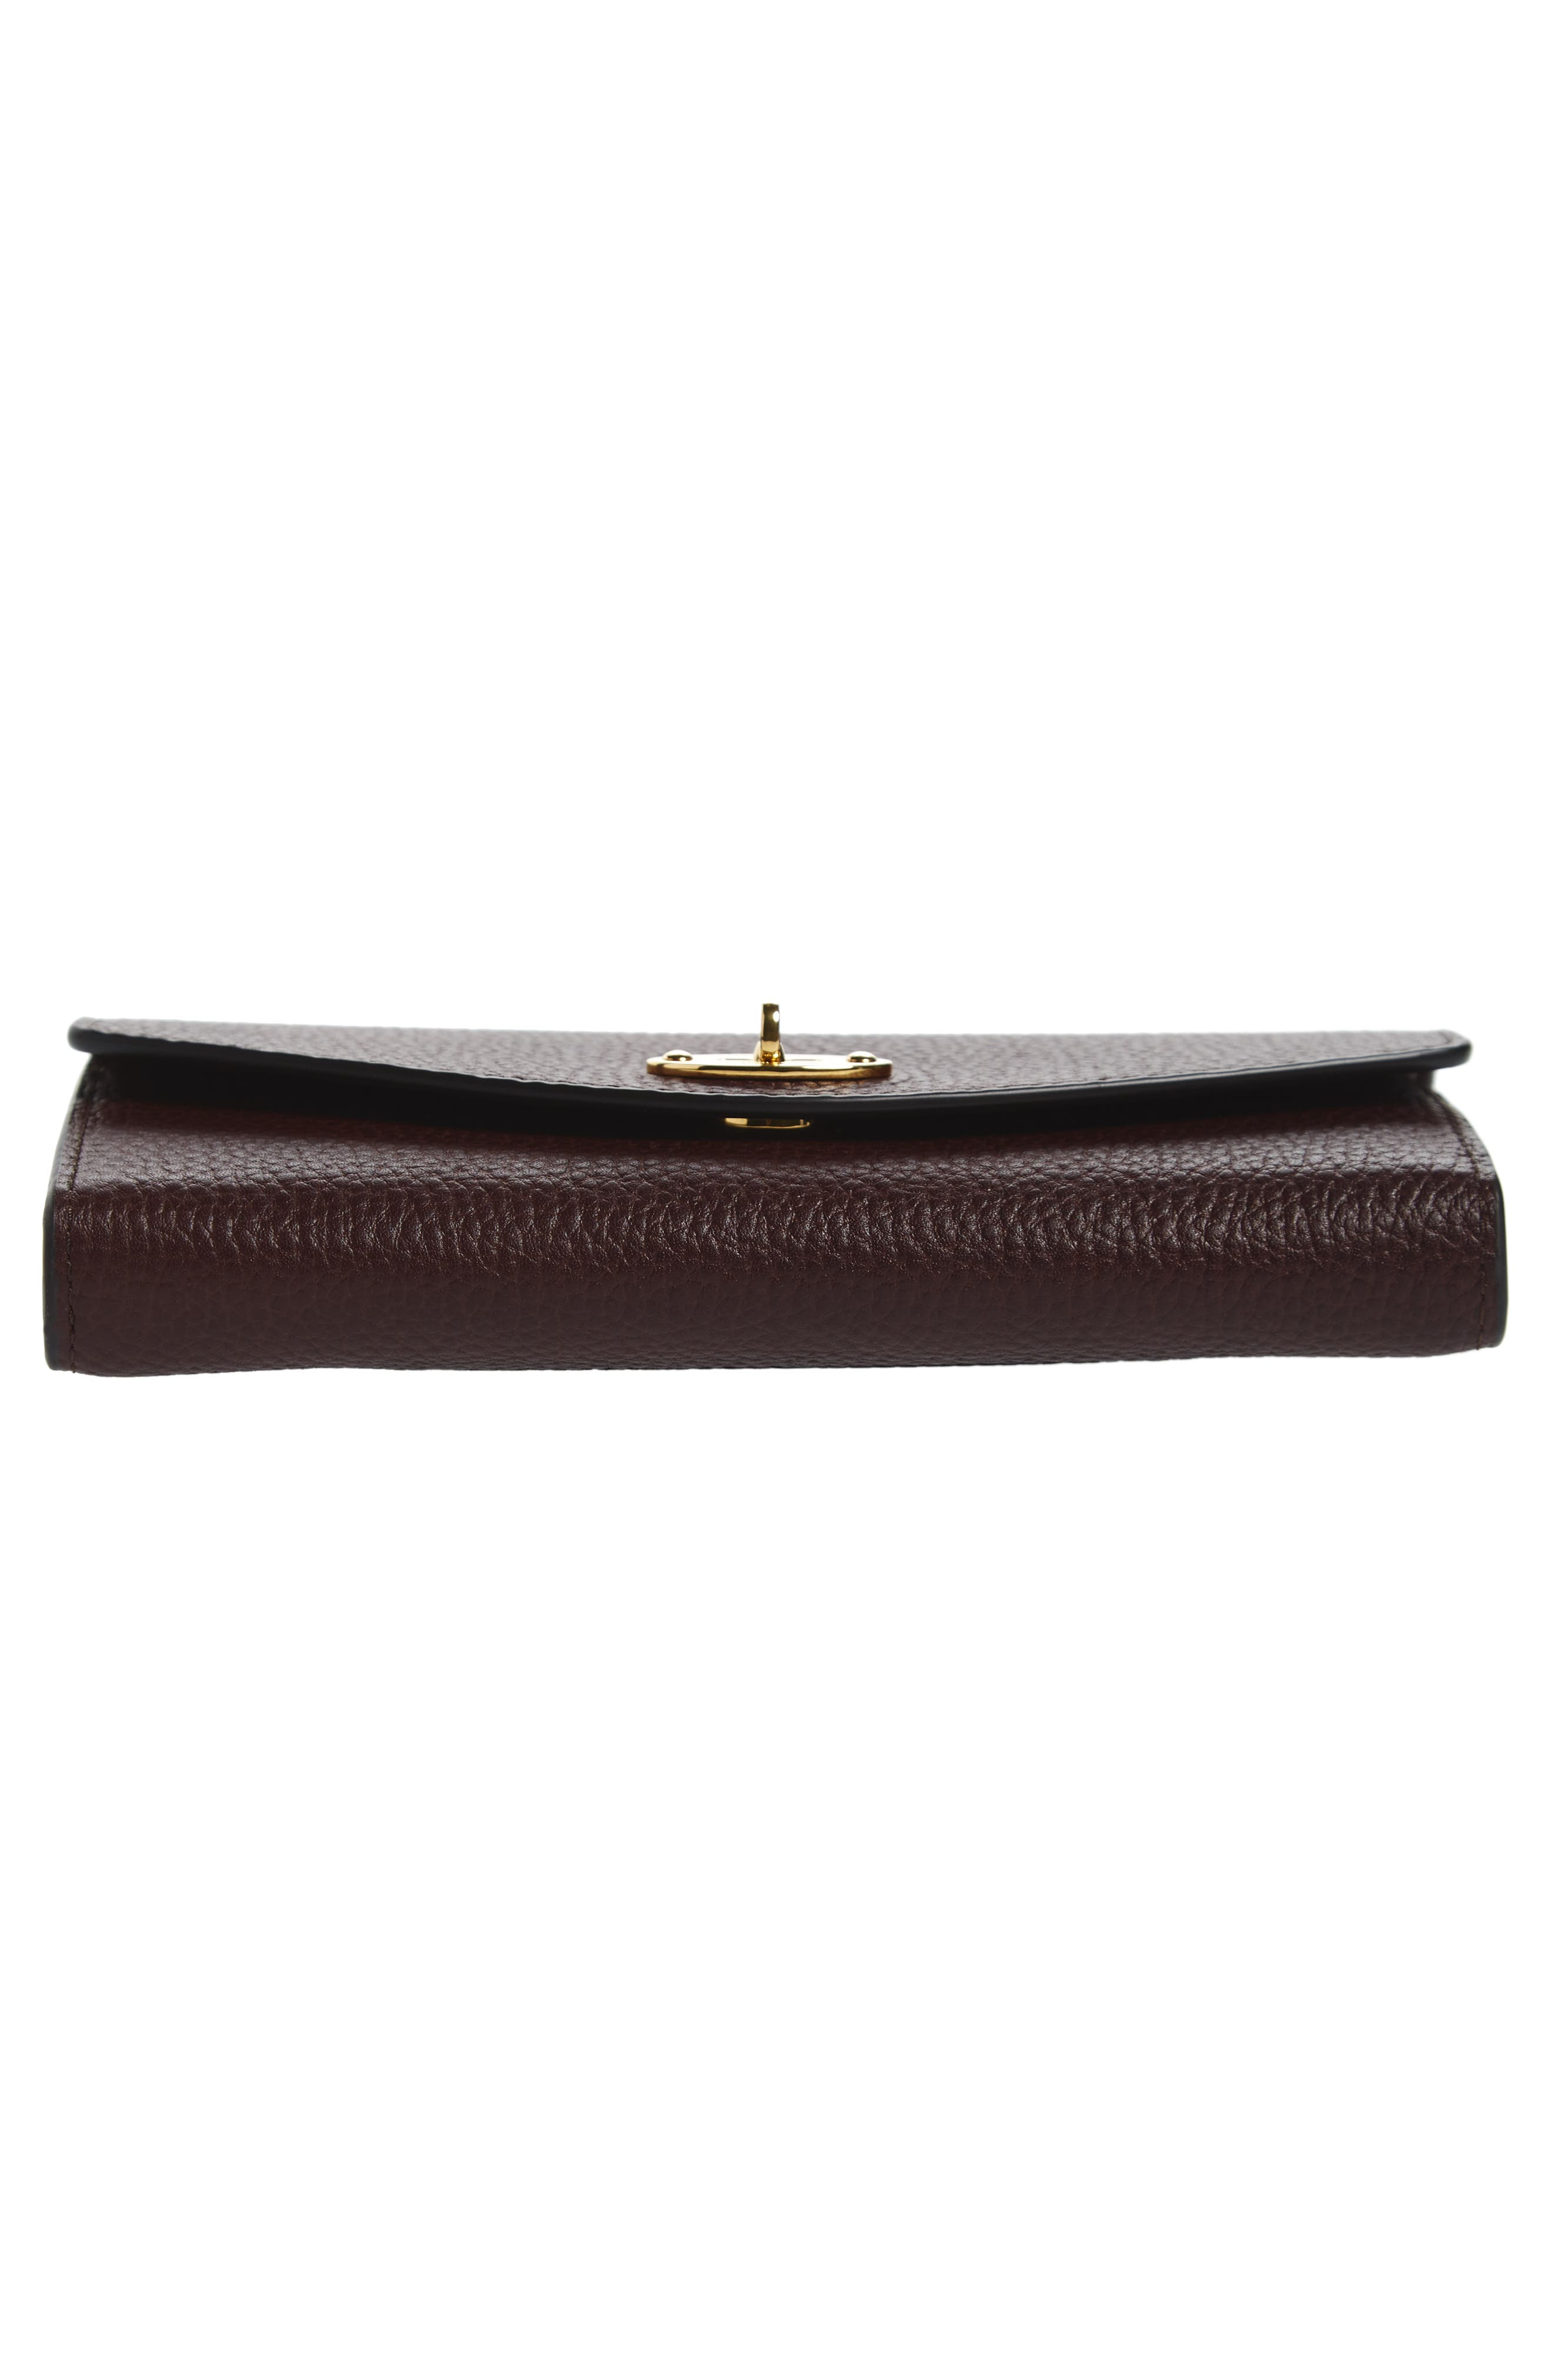 Darley Continental Calfskin Leather Wallet,                             Alternate thumbnail 6, color,